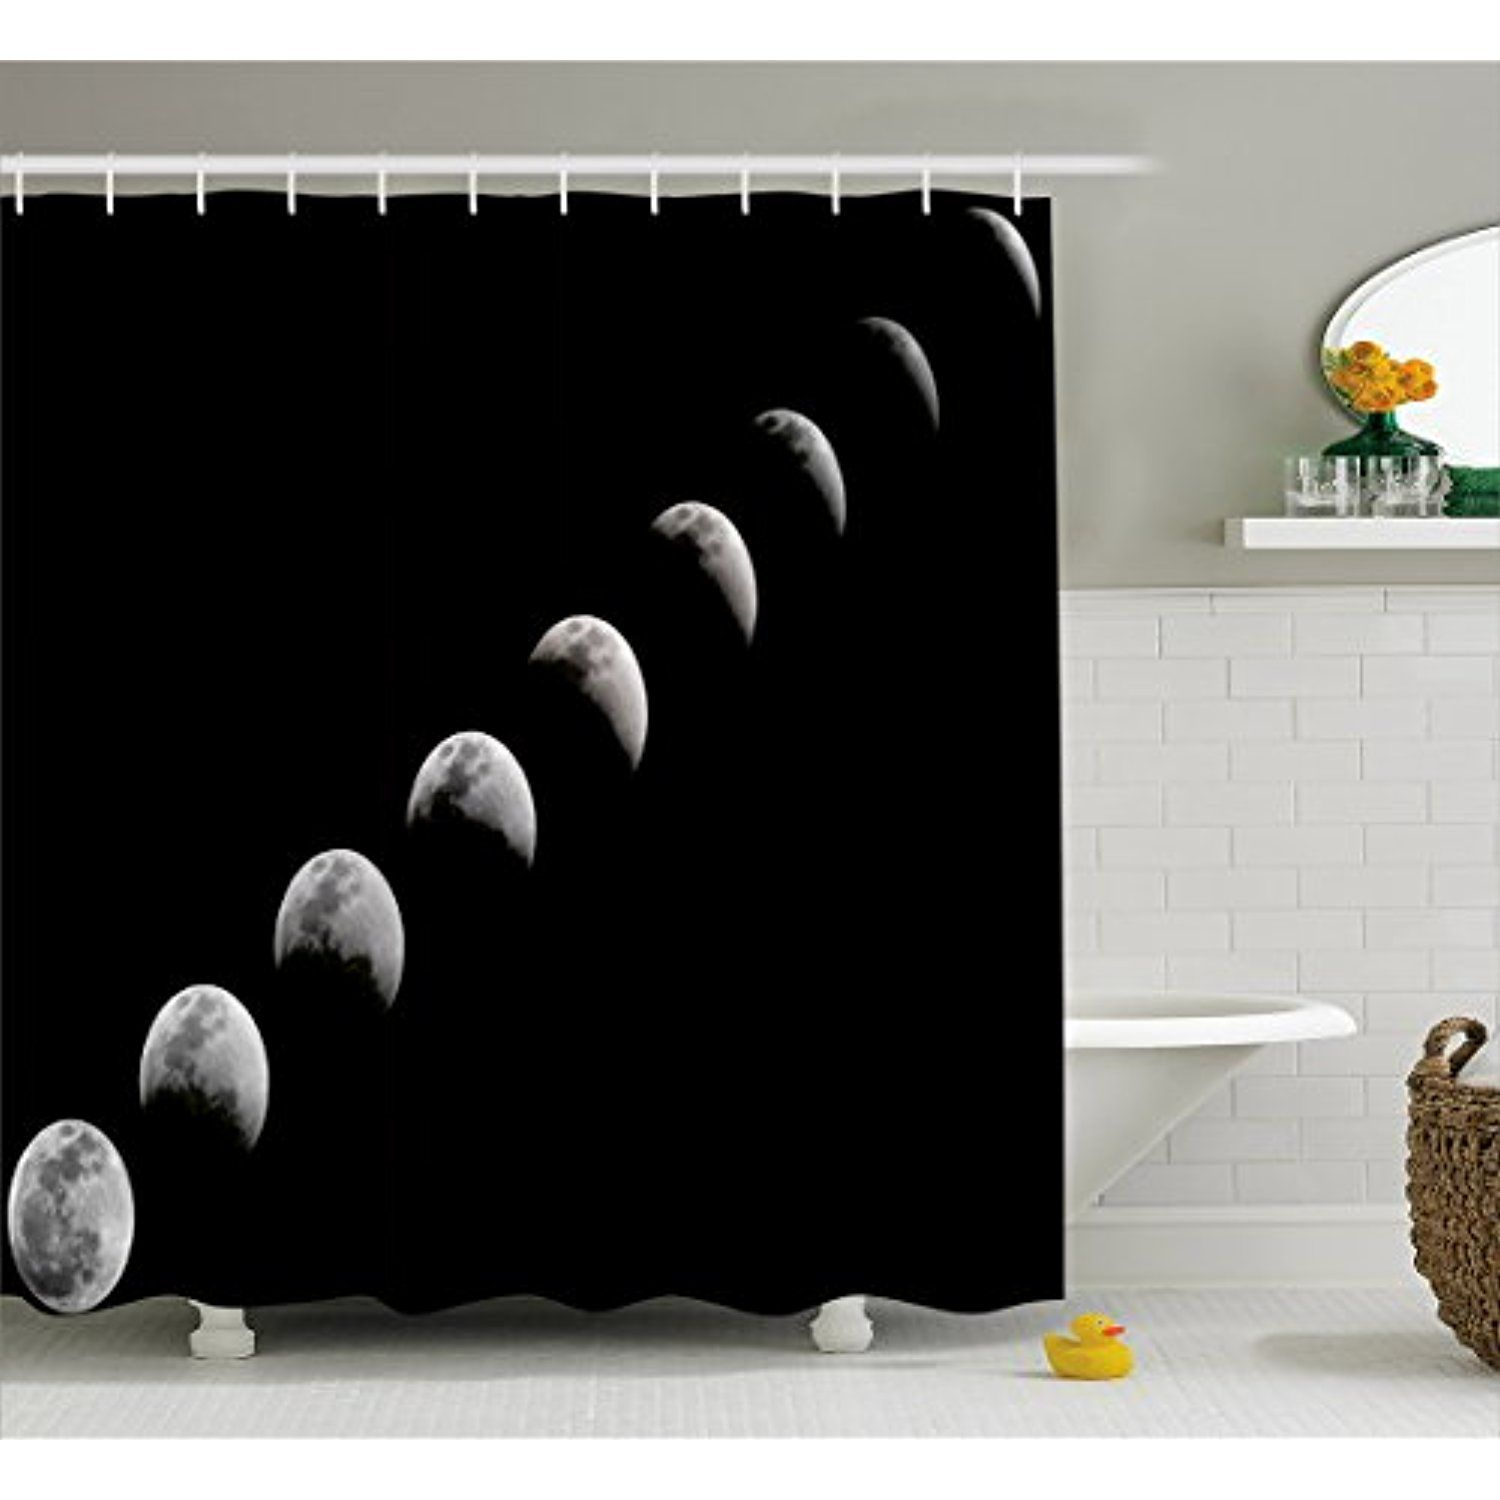 Moon Phases Shower Curtain By Lunarable A Lunar Eclipse Changing Phase Of The Moon Astronomy And Universe Theme Fabri Bathroom Decor Sets Bathroom Decor Bath